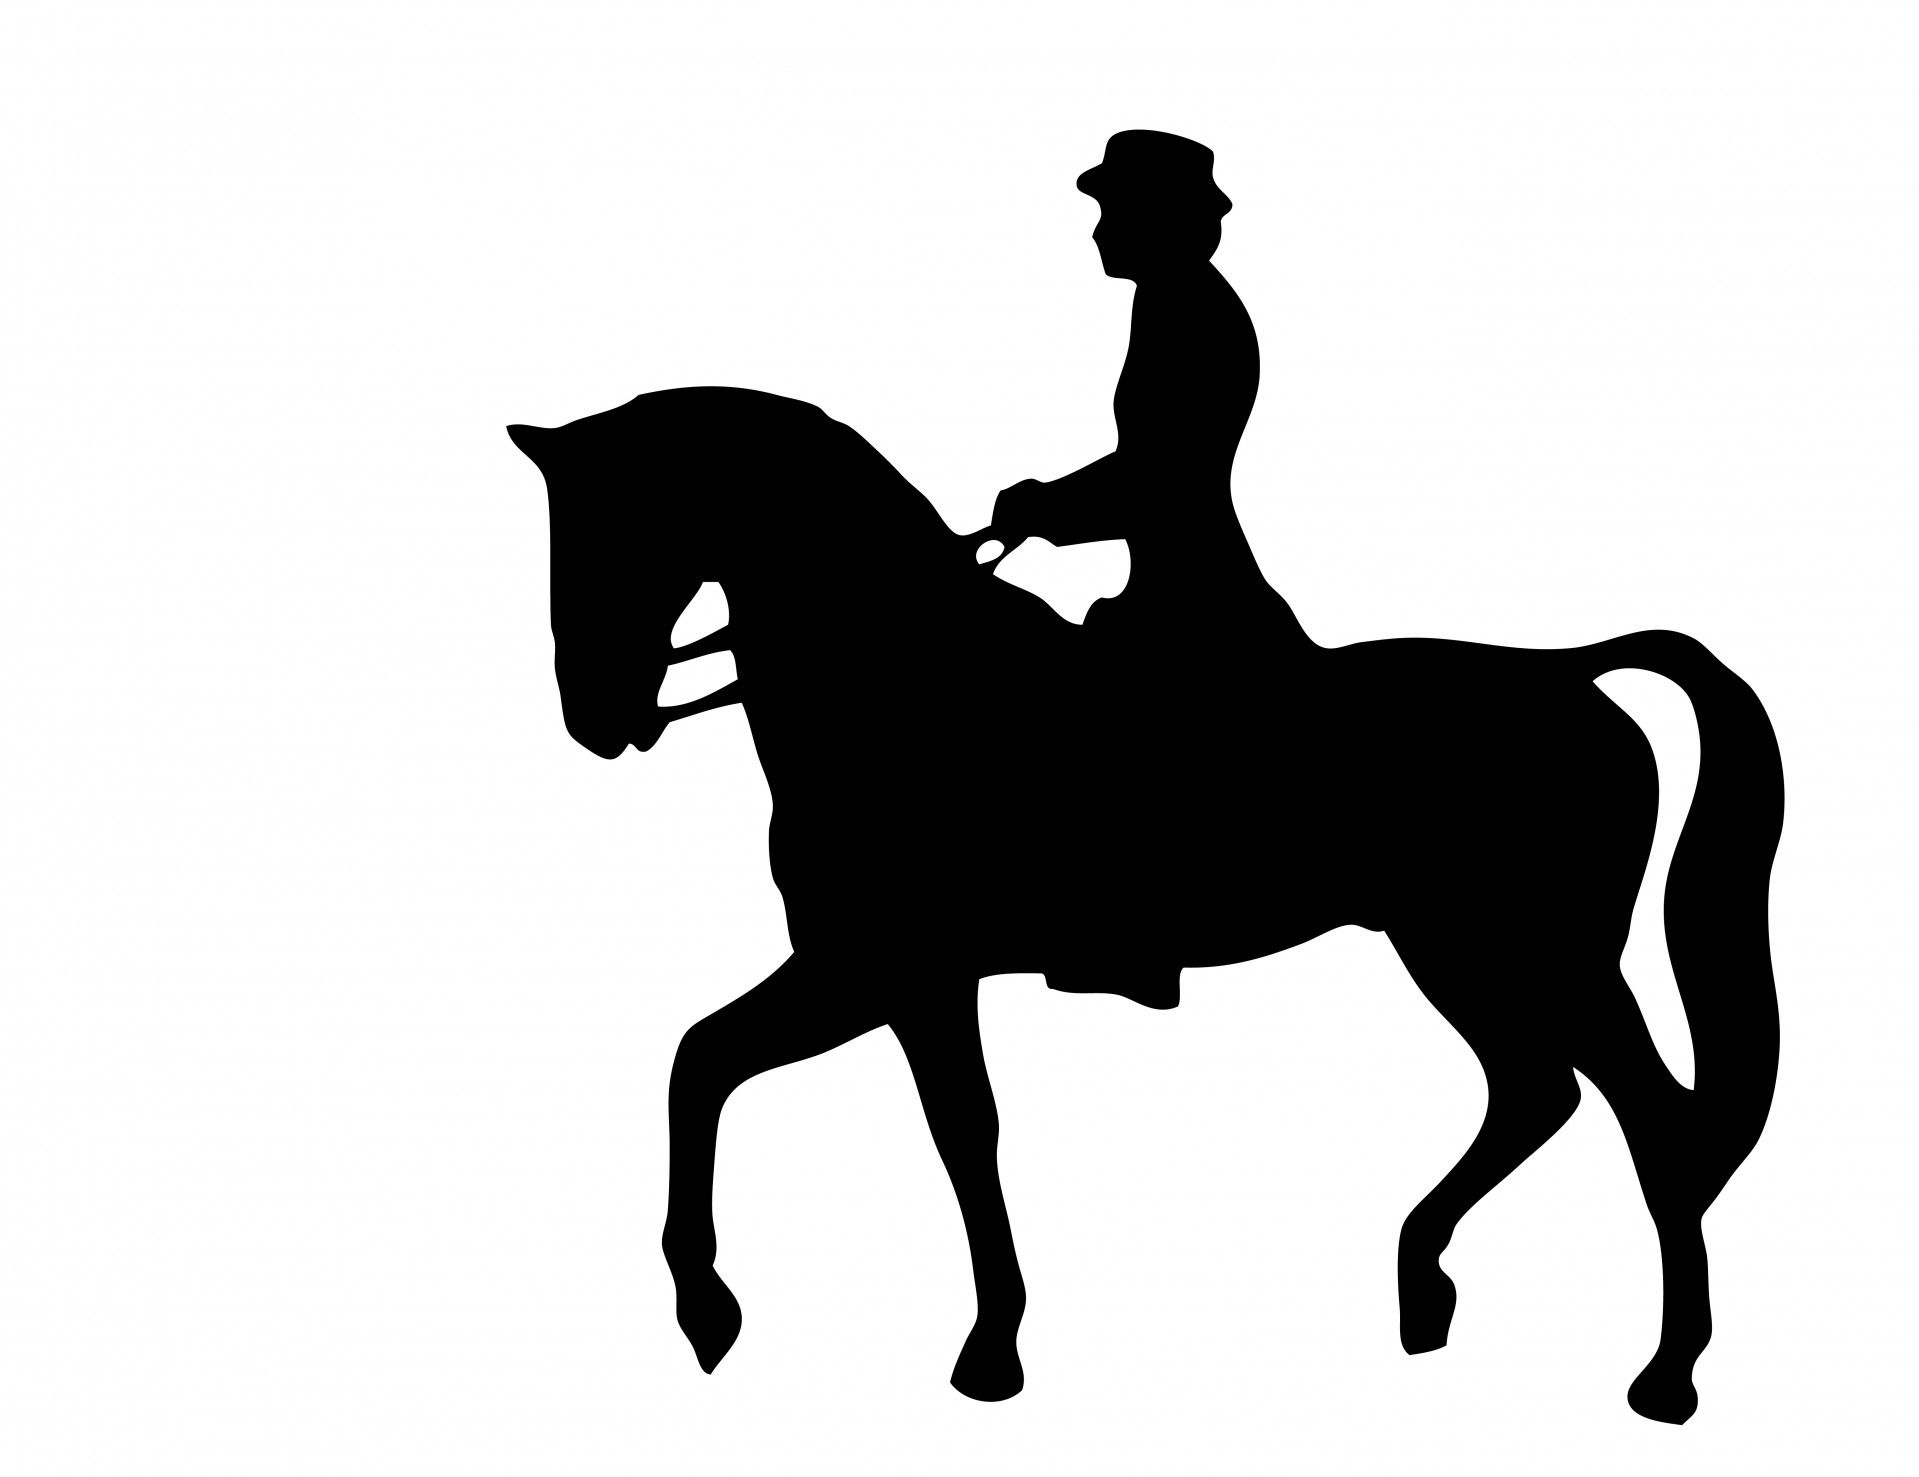 horse riding Silhouette.